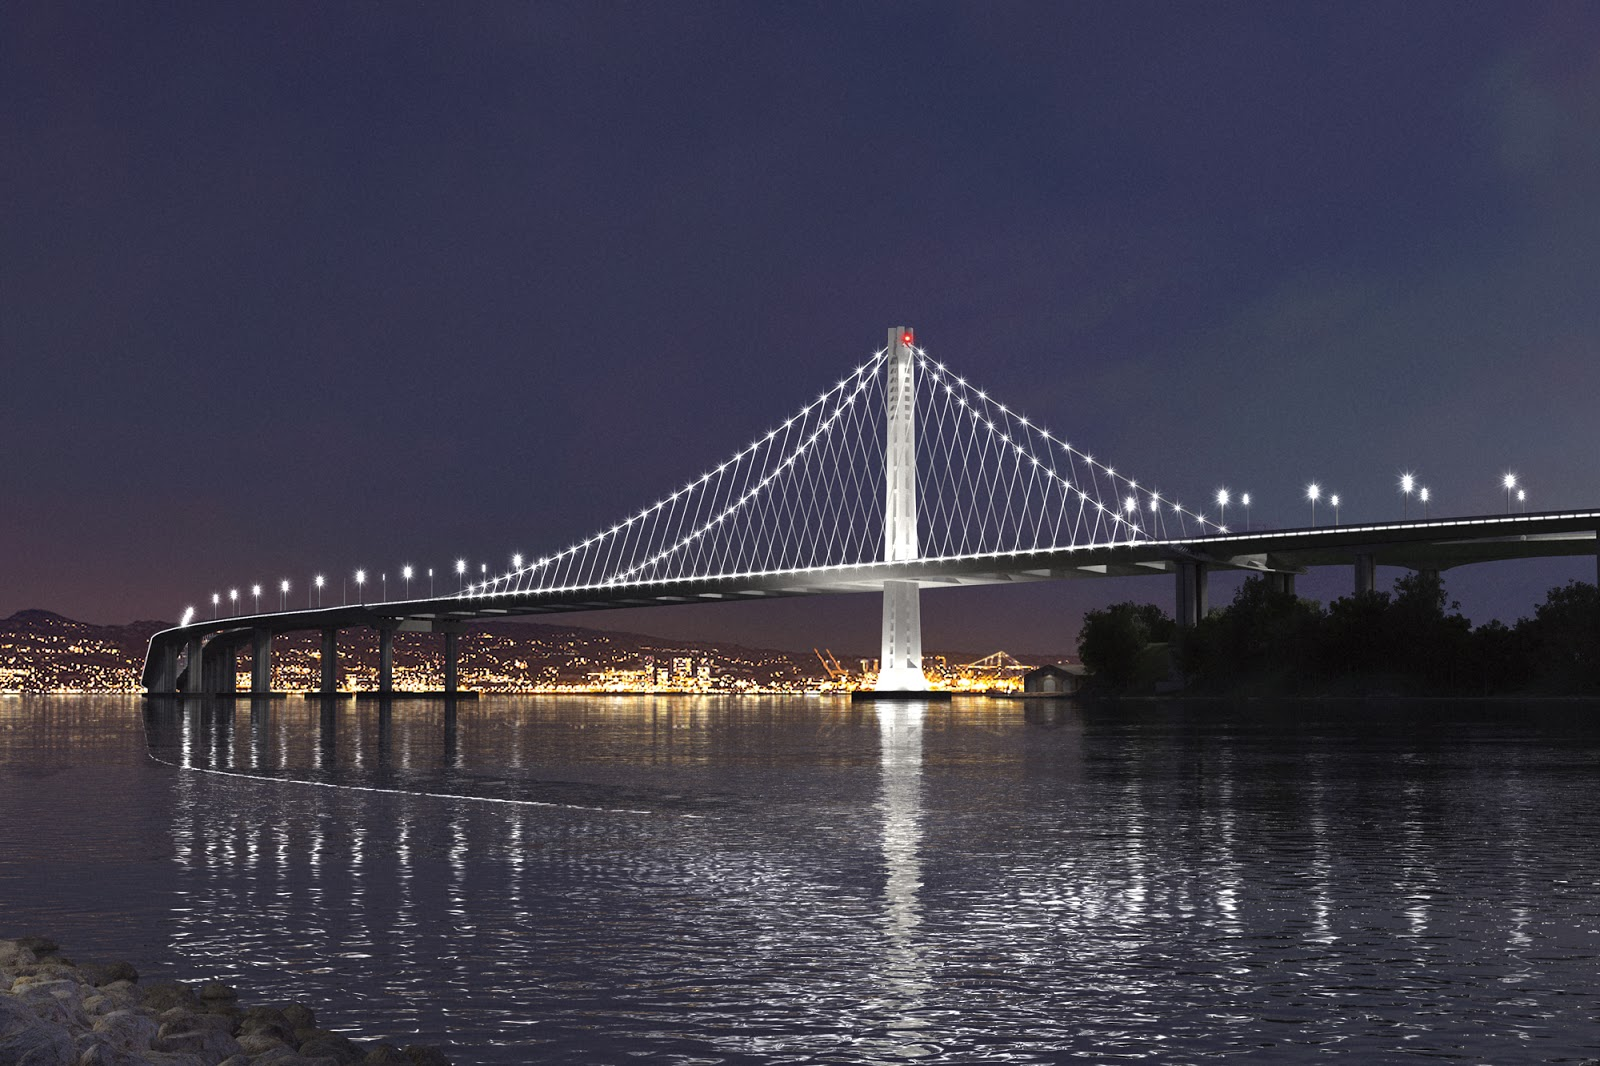 ""\"""": The Man Who Designed the New Span of the San Francisco Bay Bridge 1880""1600|1066|?|en|2|44d7e6f2776c3583a17c1db36560c52c|False|UNLIKELY|0.3045200705528259